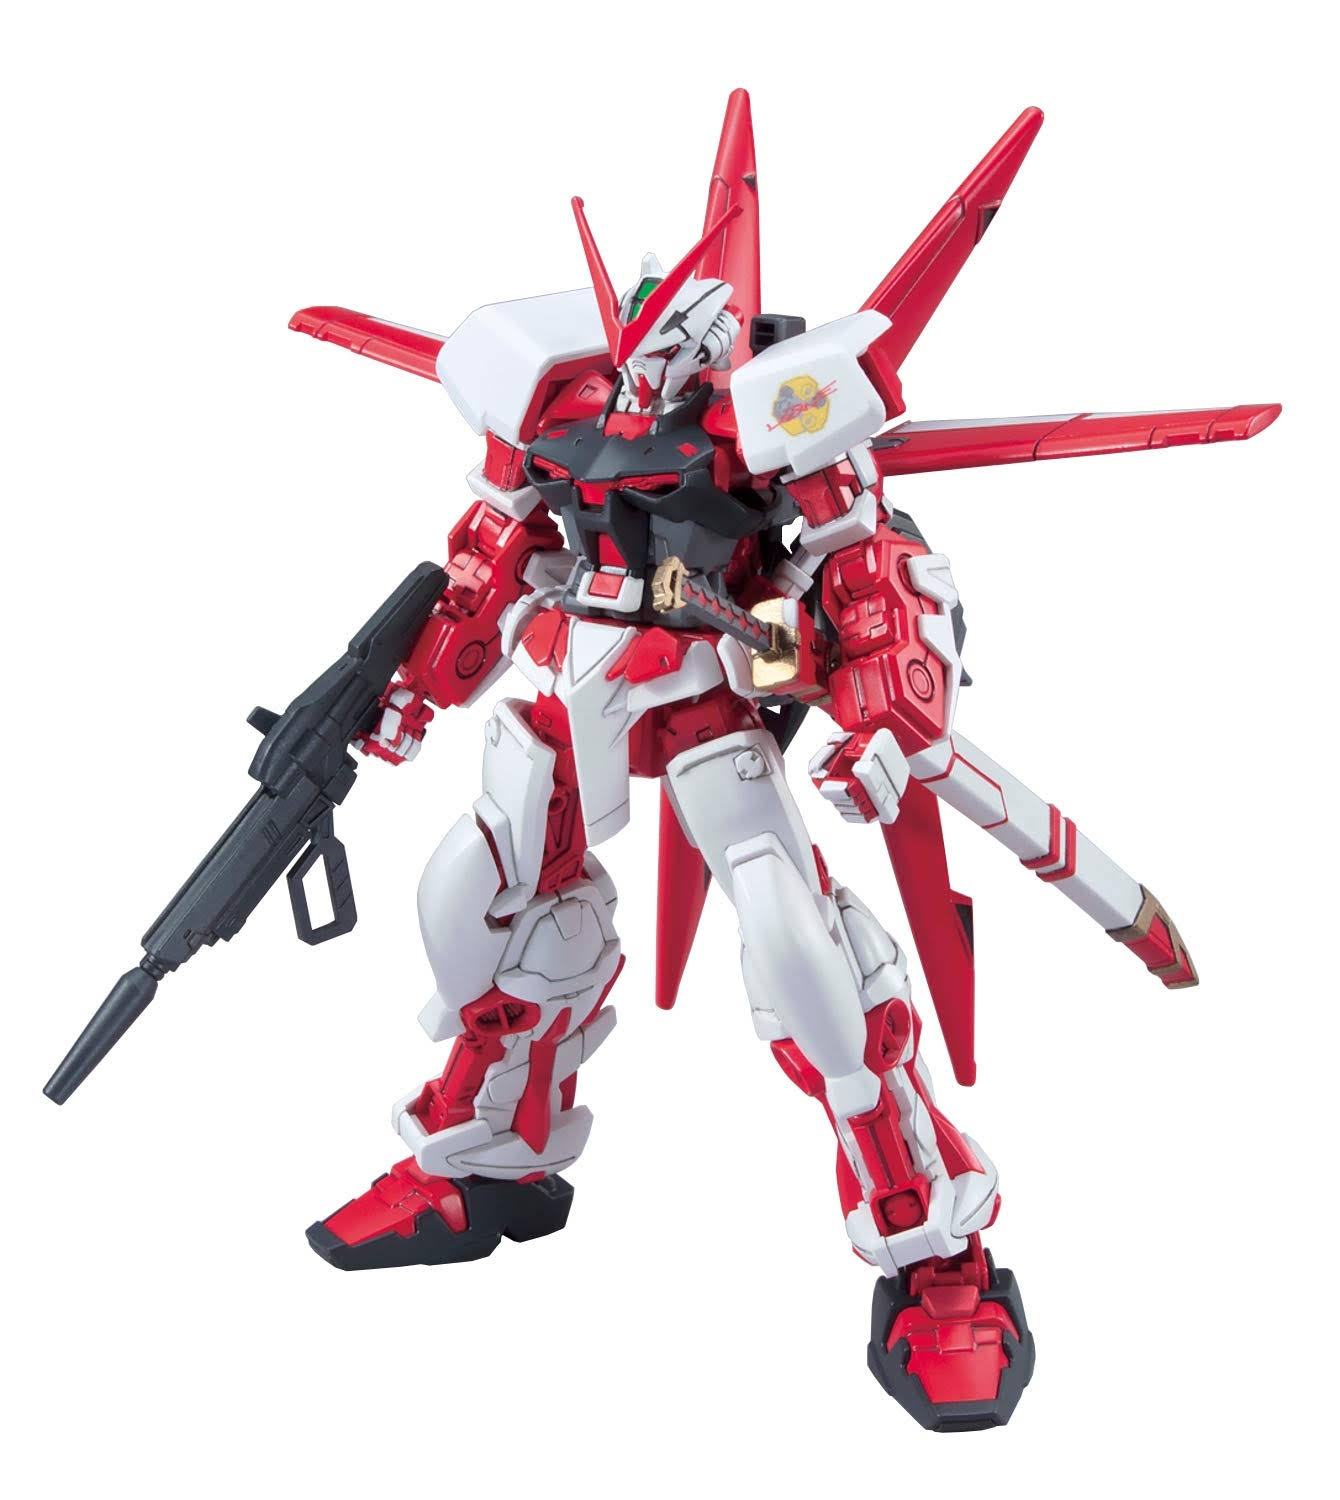 Gundam Astray Red Frame Flight Unit HG Model Kit - Scale 1:144